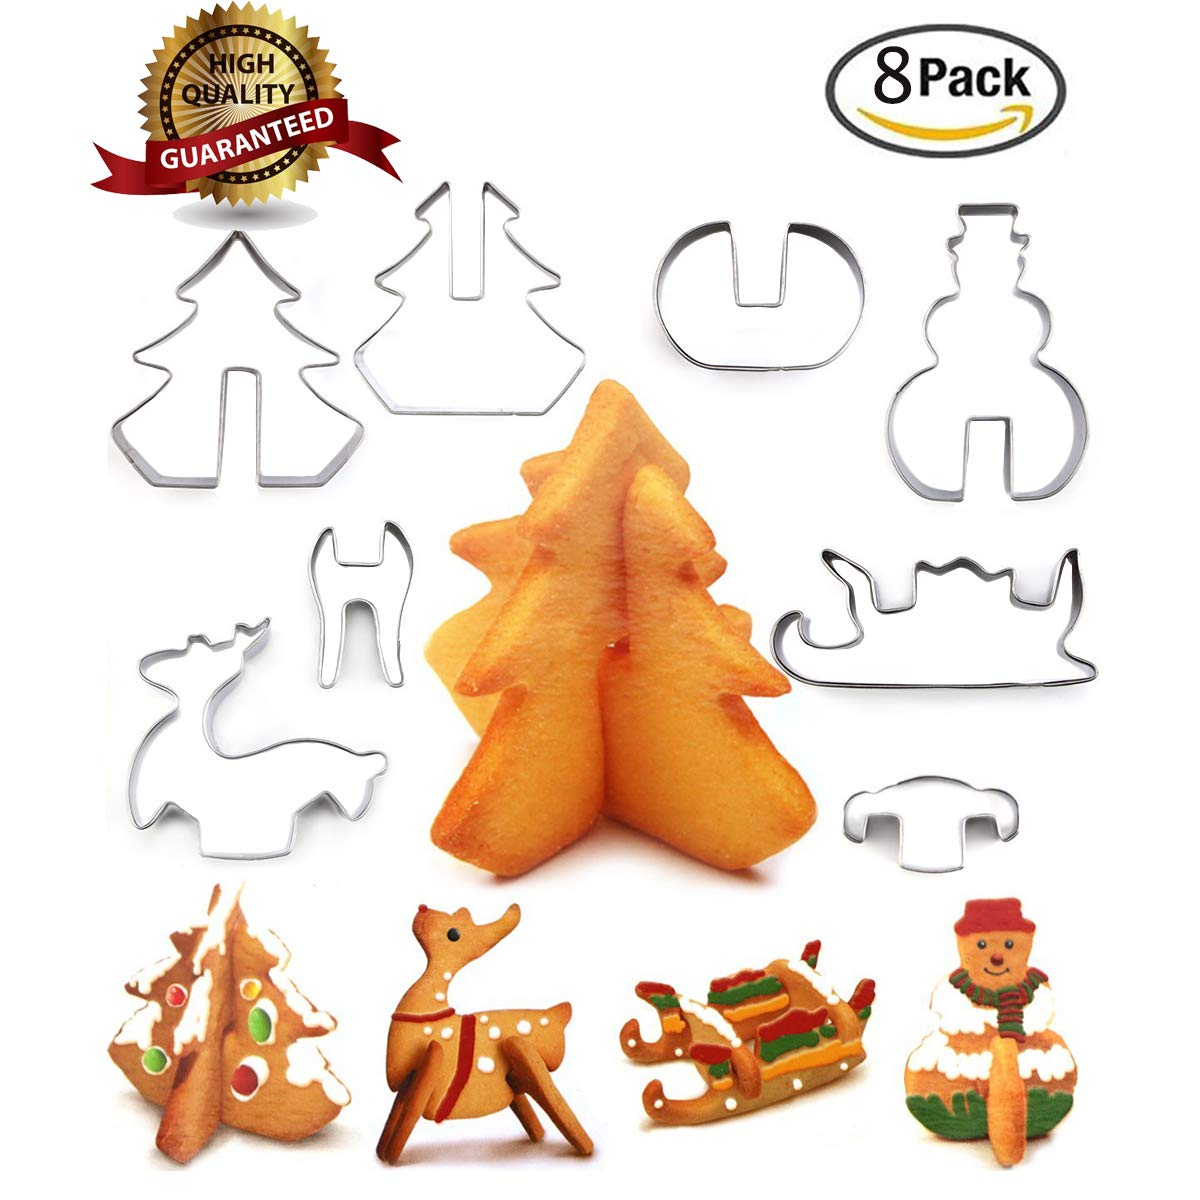 Christmas Stainless Steel 3D Cookie Cutters Set Cookies Molds – 8 piece- Christmas tree, Santa Claus, Sika deer, Skiing. SUPER-TECH